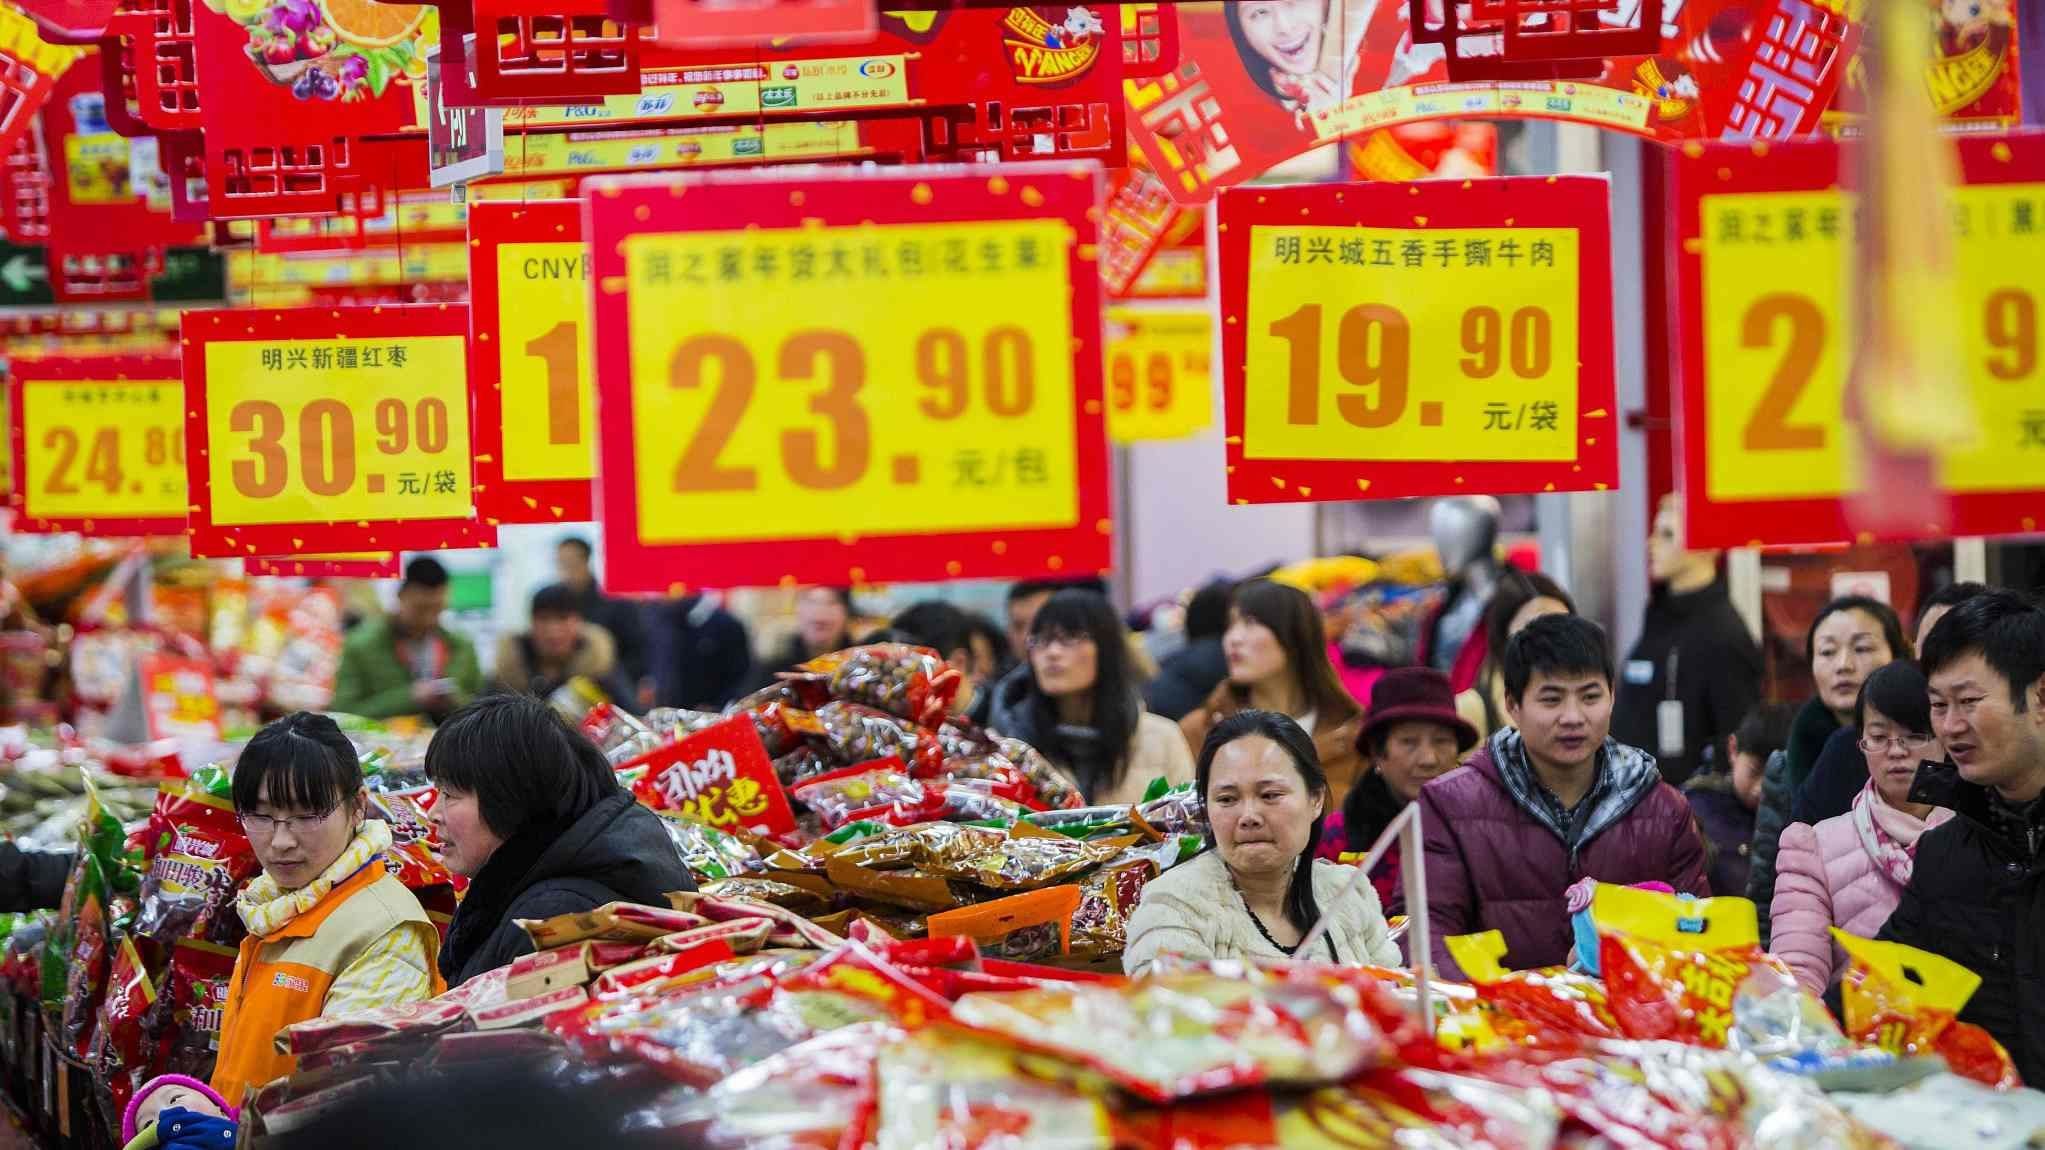 Economic Watch: China steps up meat imports to ensure holiday supply